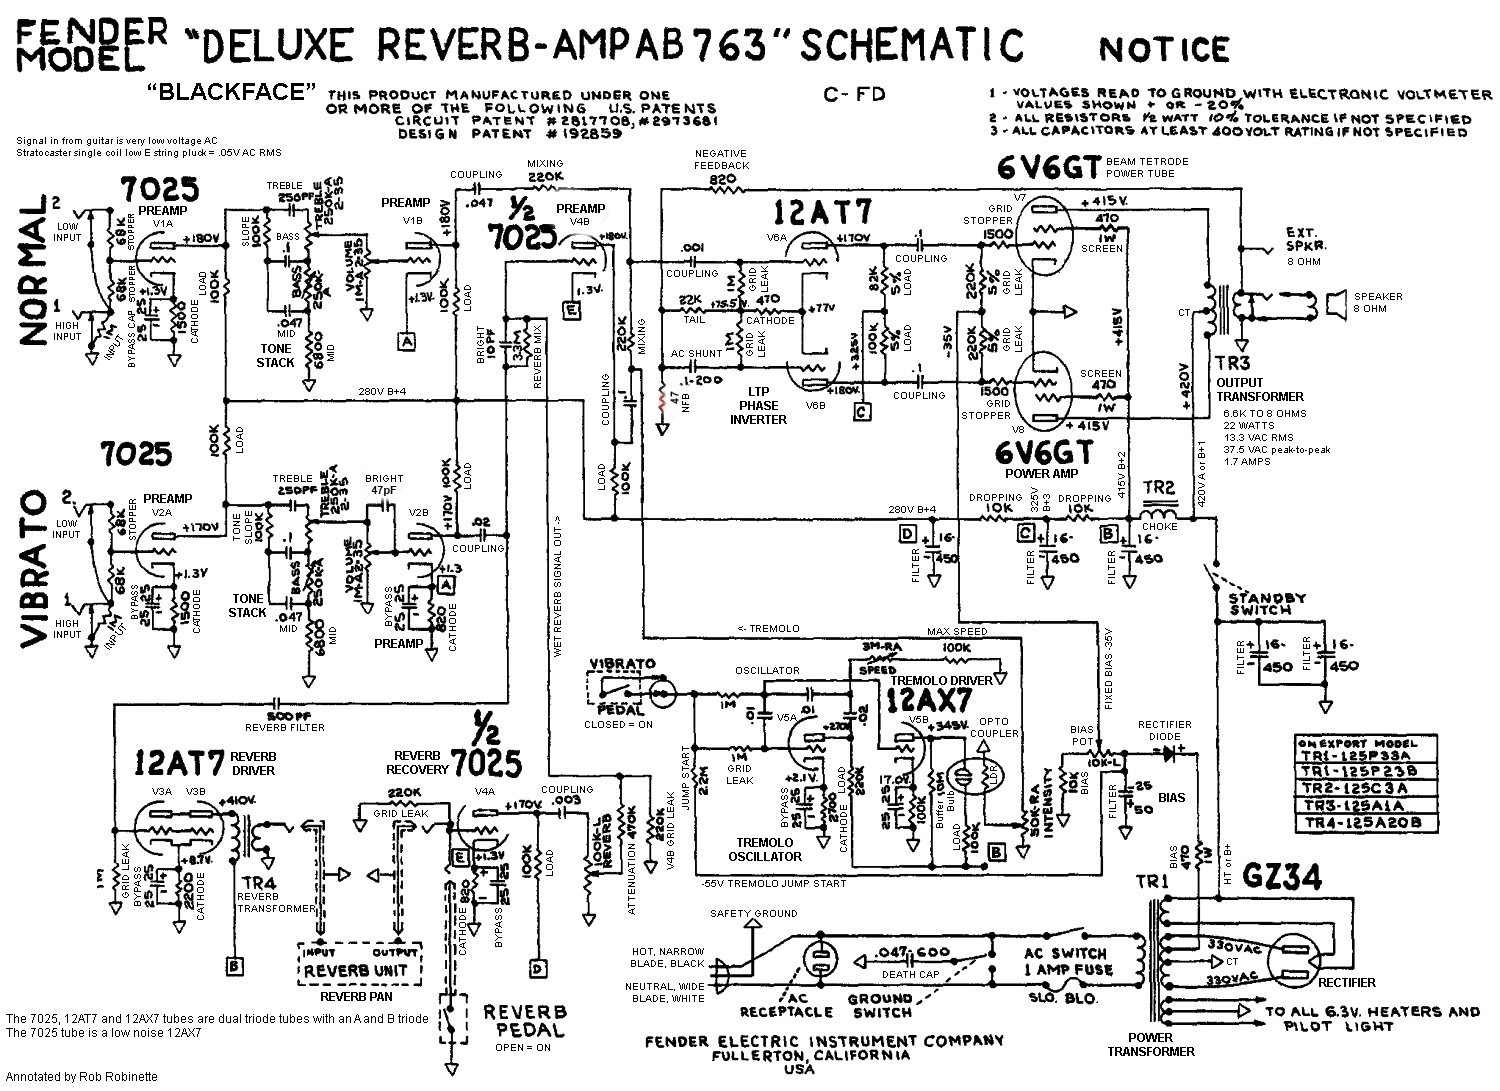 Guitar Push Pull Switch Wiring Diagram Ab763 Mods Click The Image For Full Size Schematic Every Component Function Is Listed